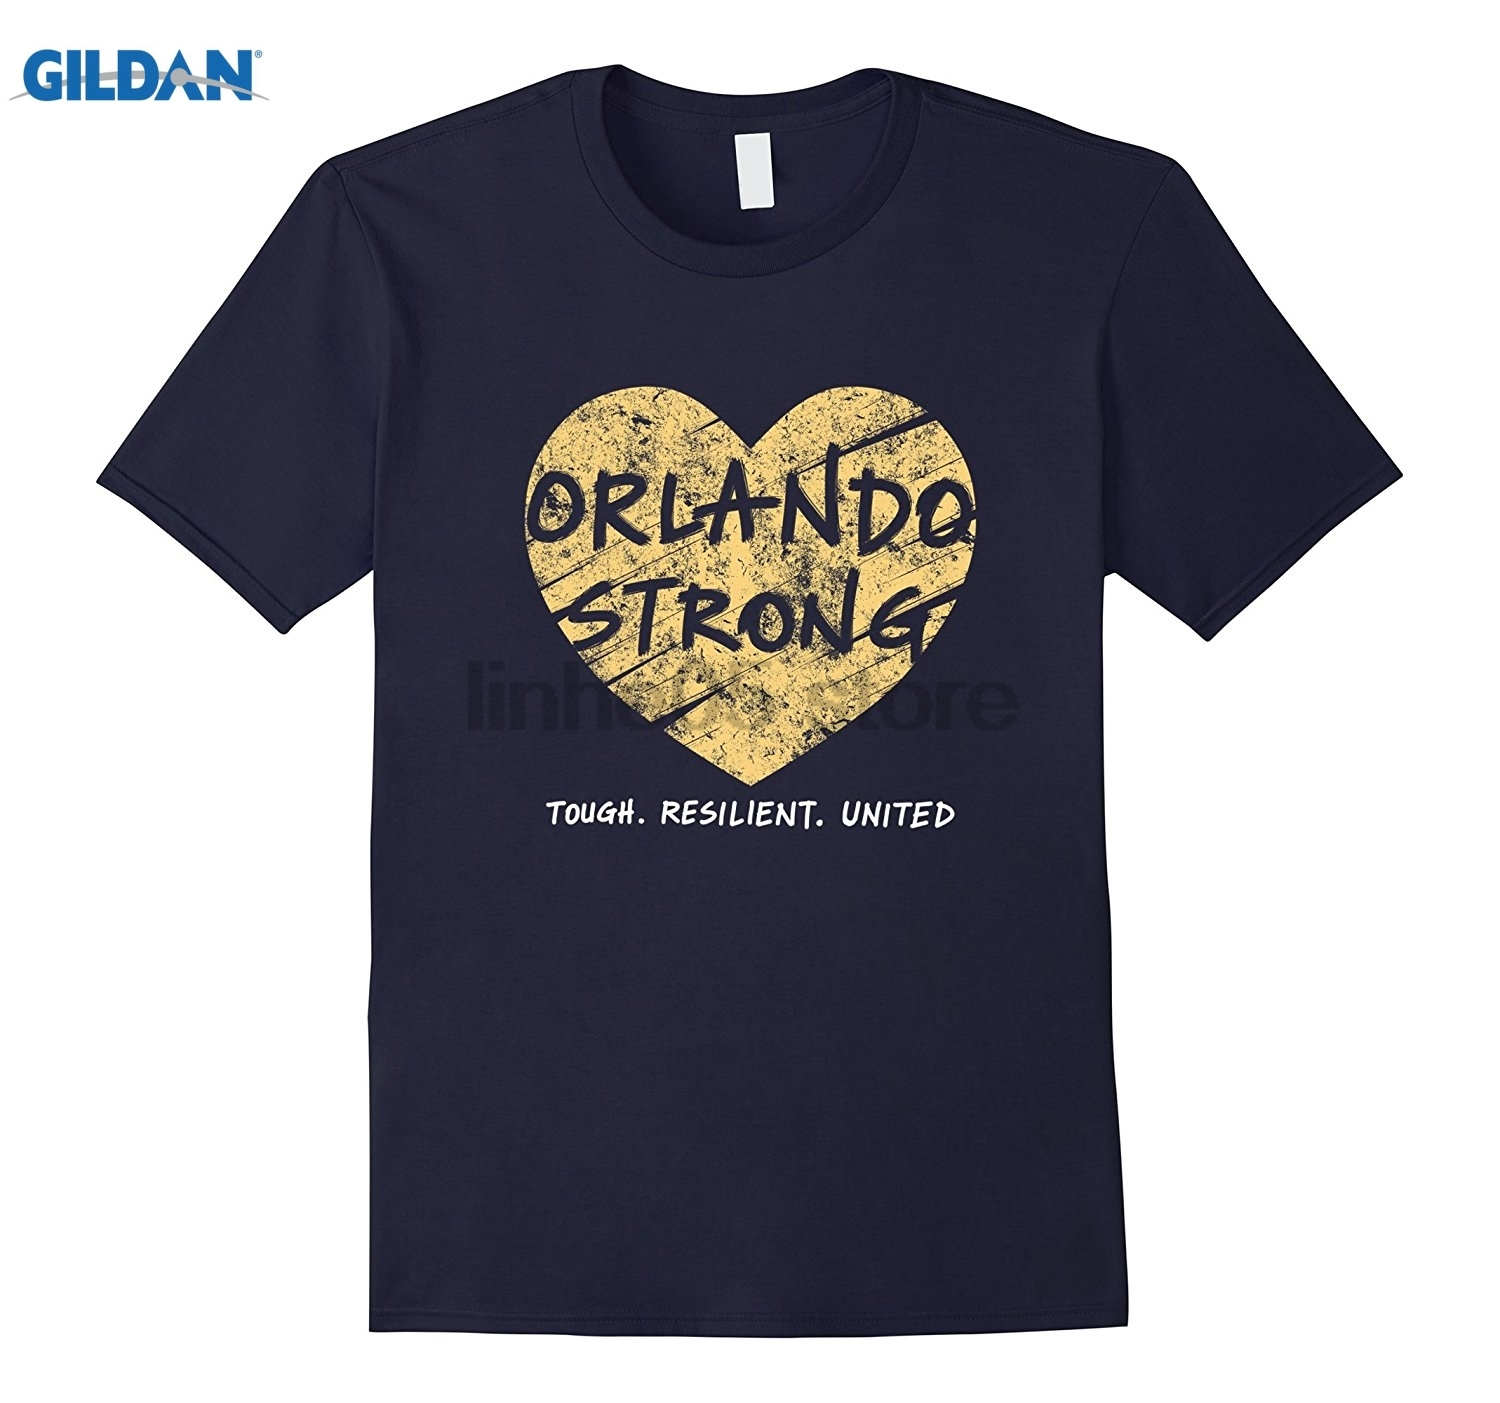 GILDAN Orlando Florida Strong Resilient United Love T Shirt sunglasses women T-shirt ...